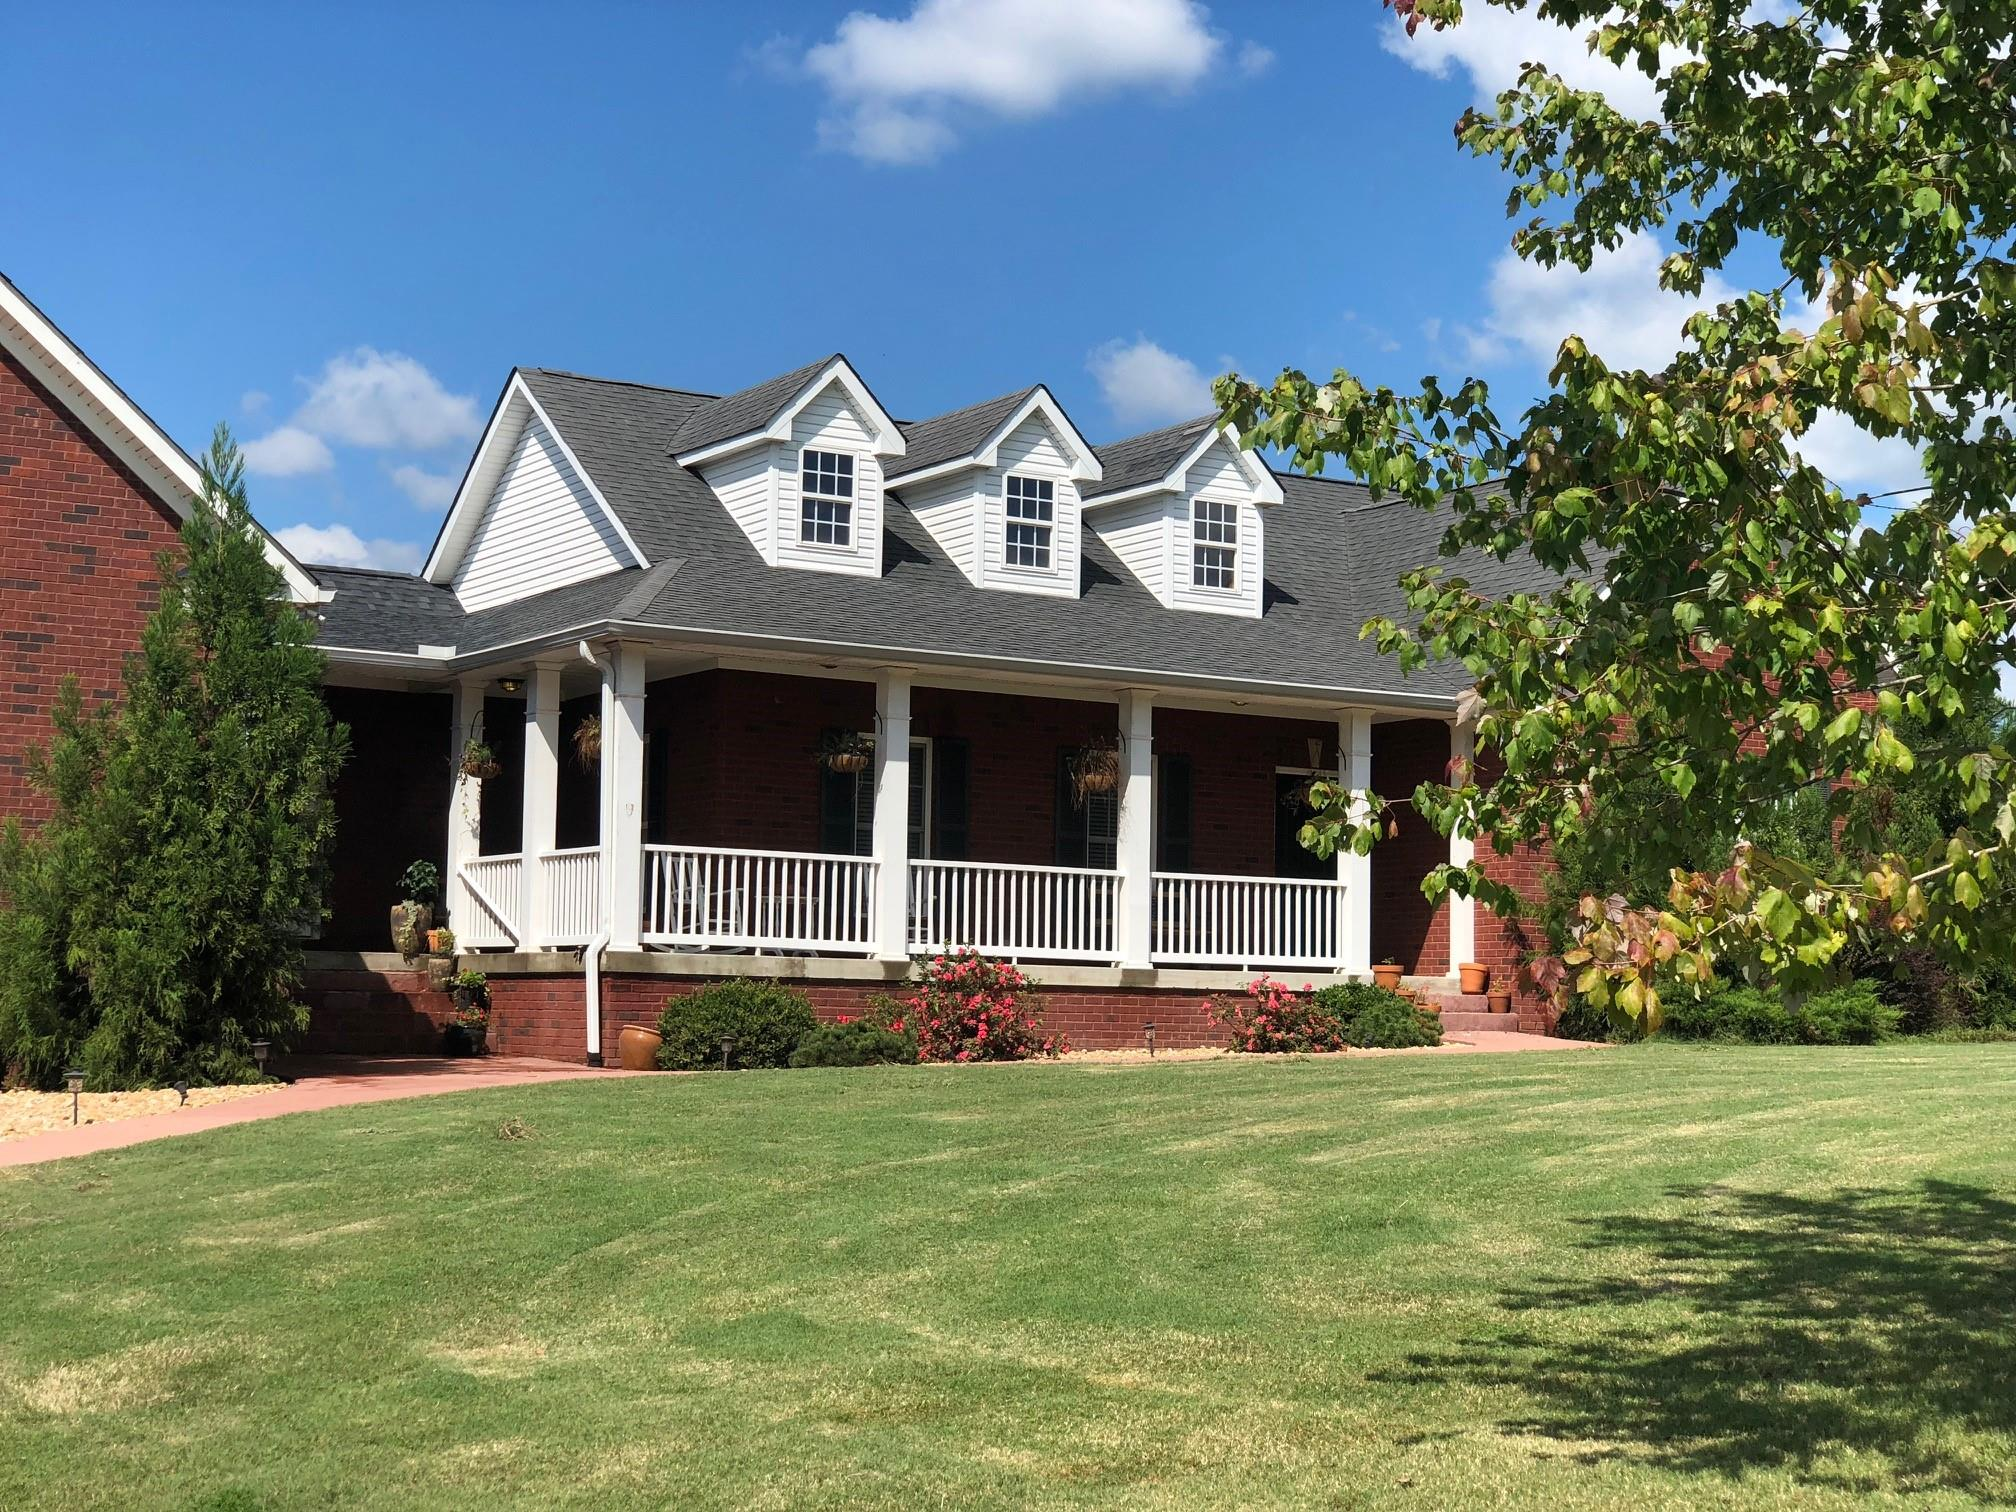 7676 Barnhill Rd., Primm Springs, TN 38476 - Primm Springs, TN real estate listing